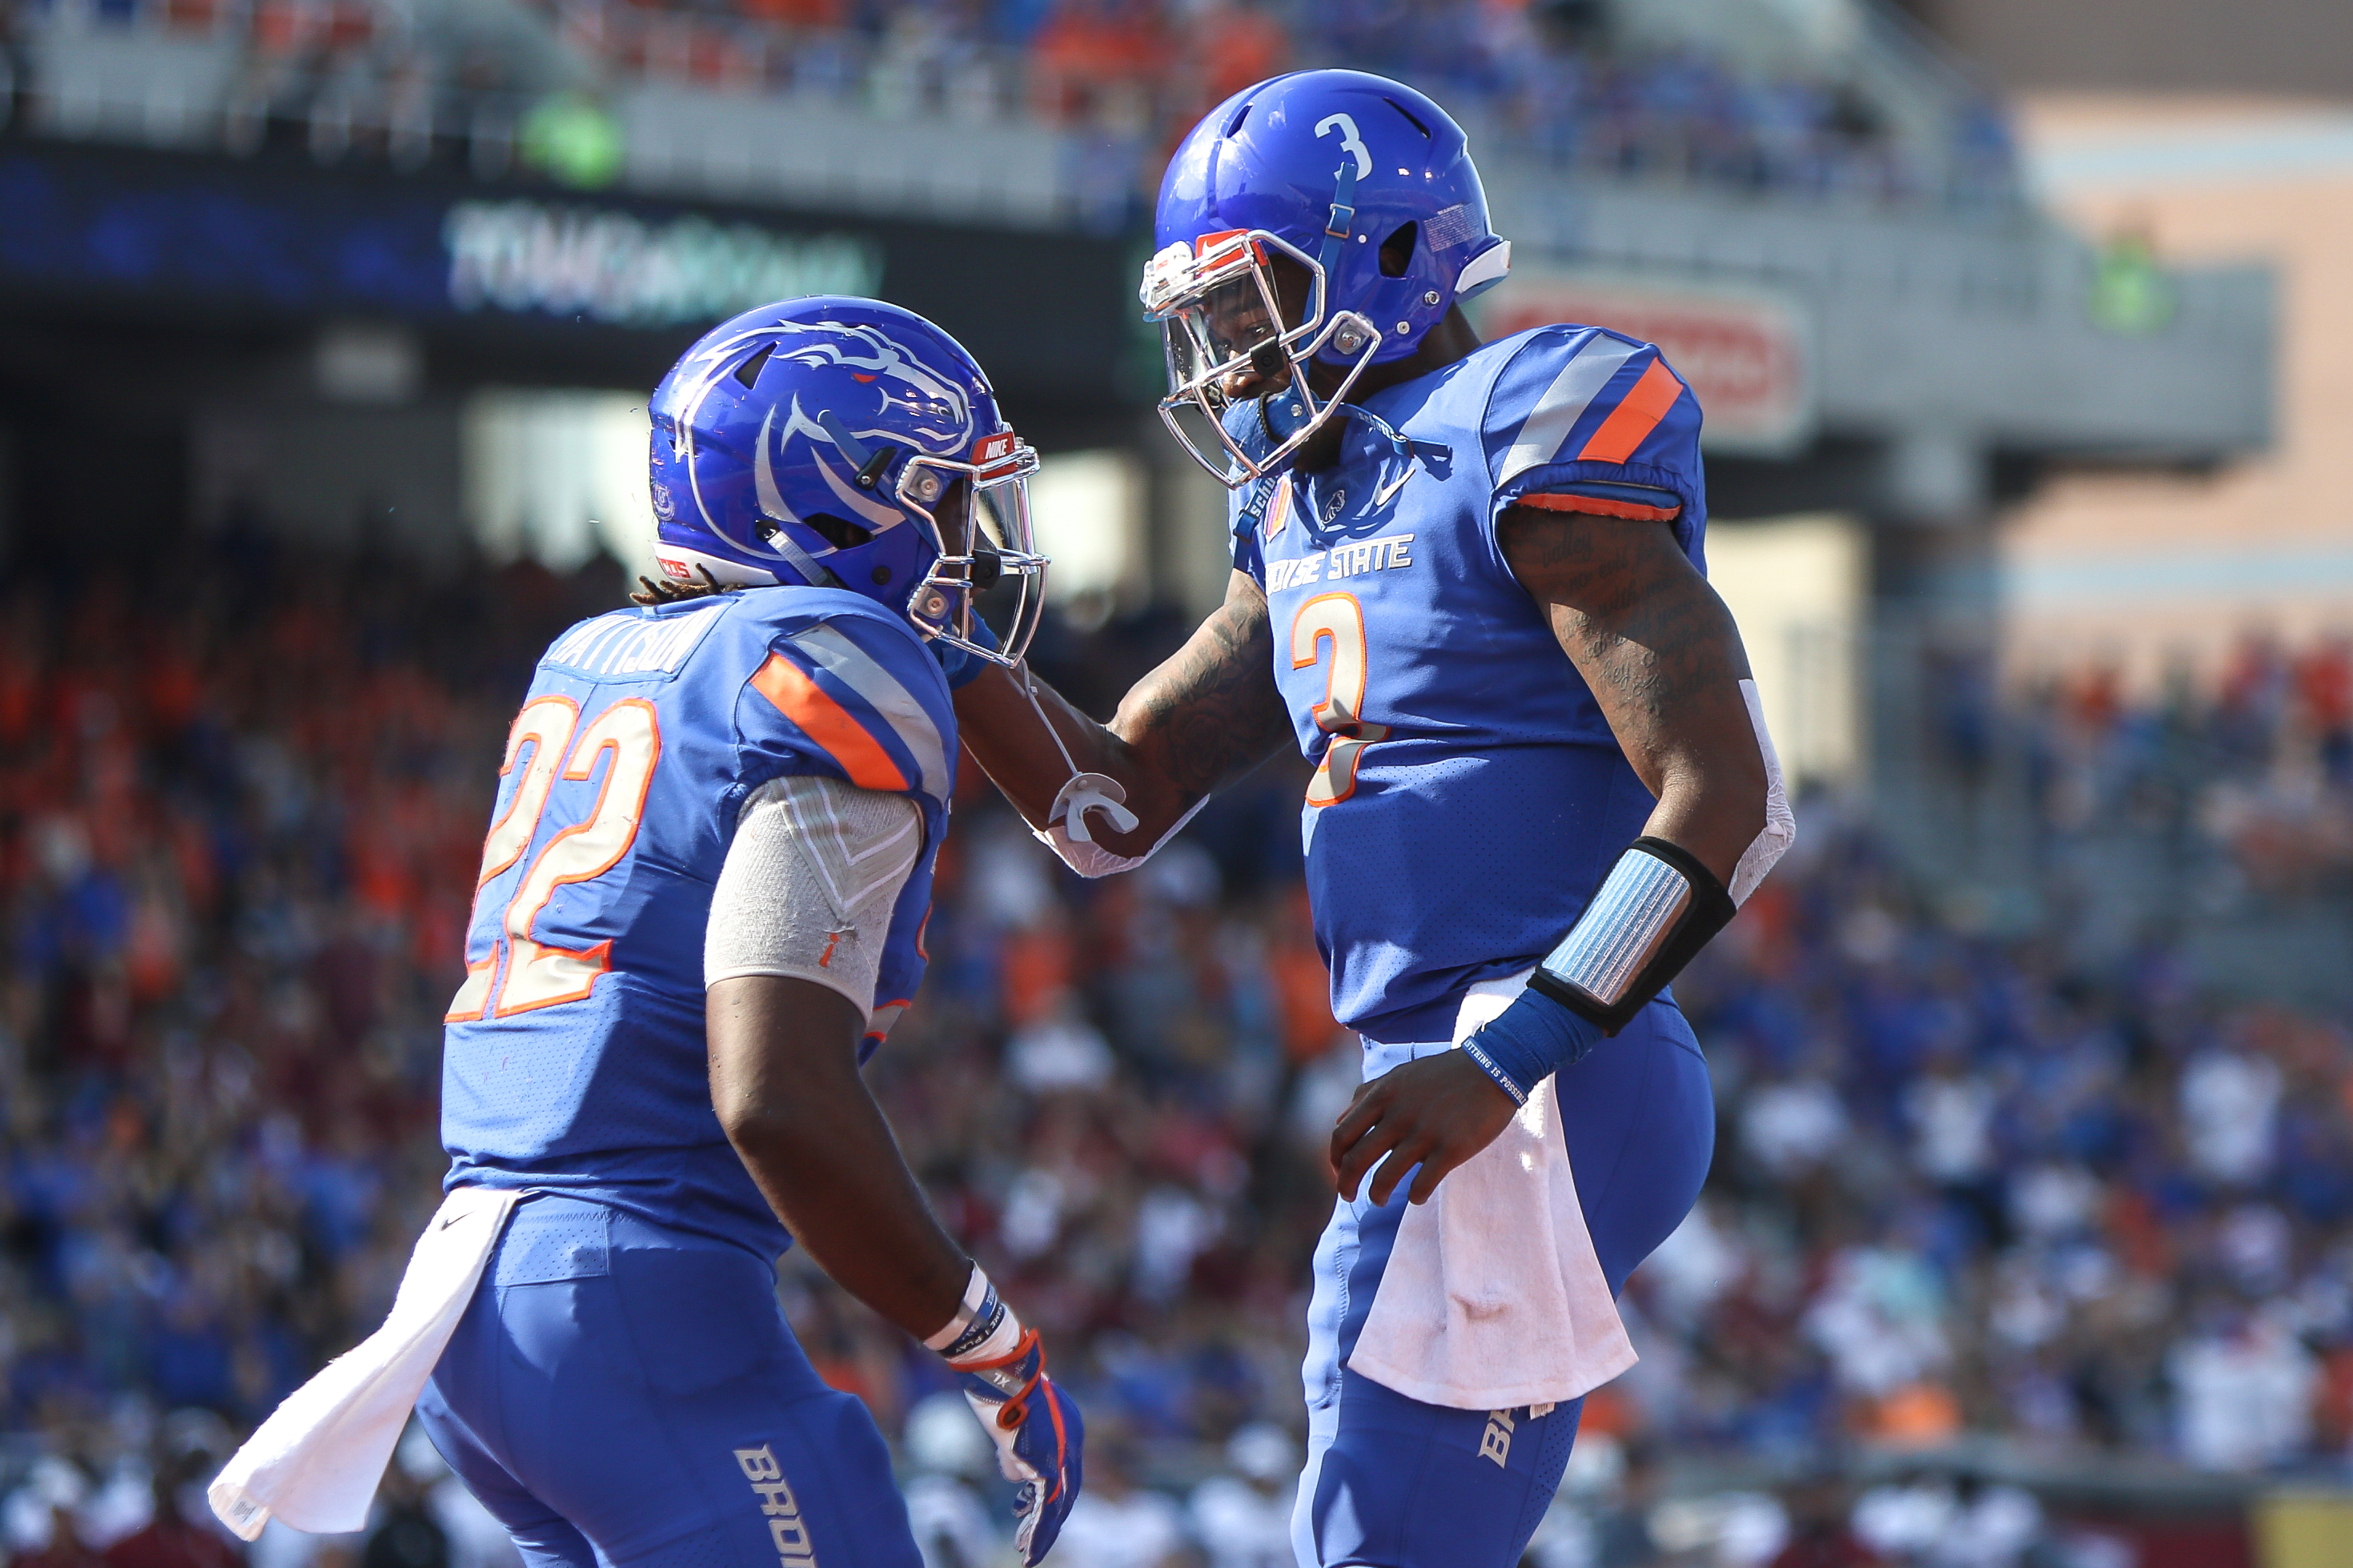 Top 25 College Football 2017 >> Boise State Football; 3 things we learned from New Mexico win - Page 2